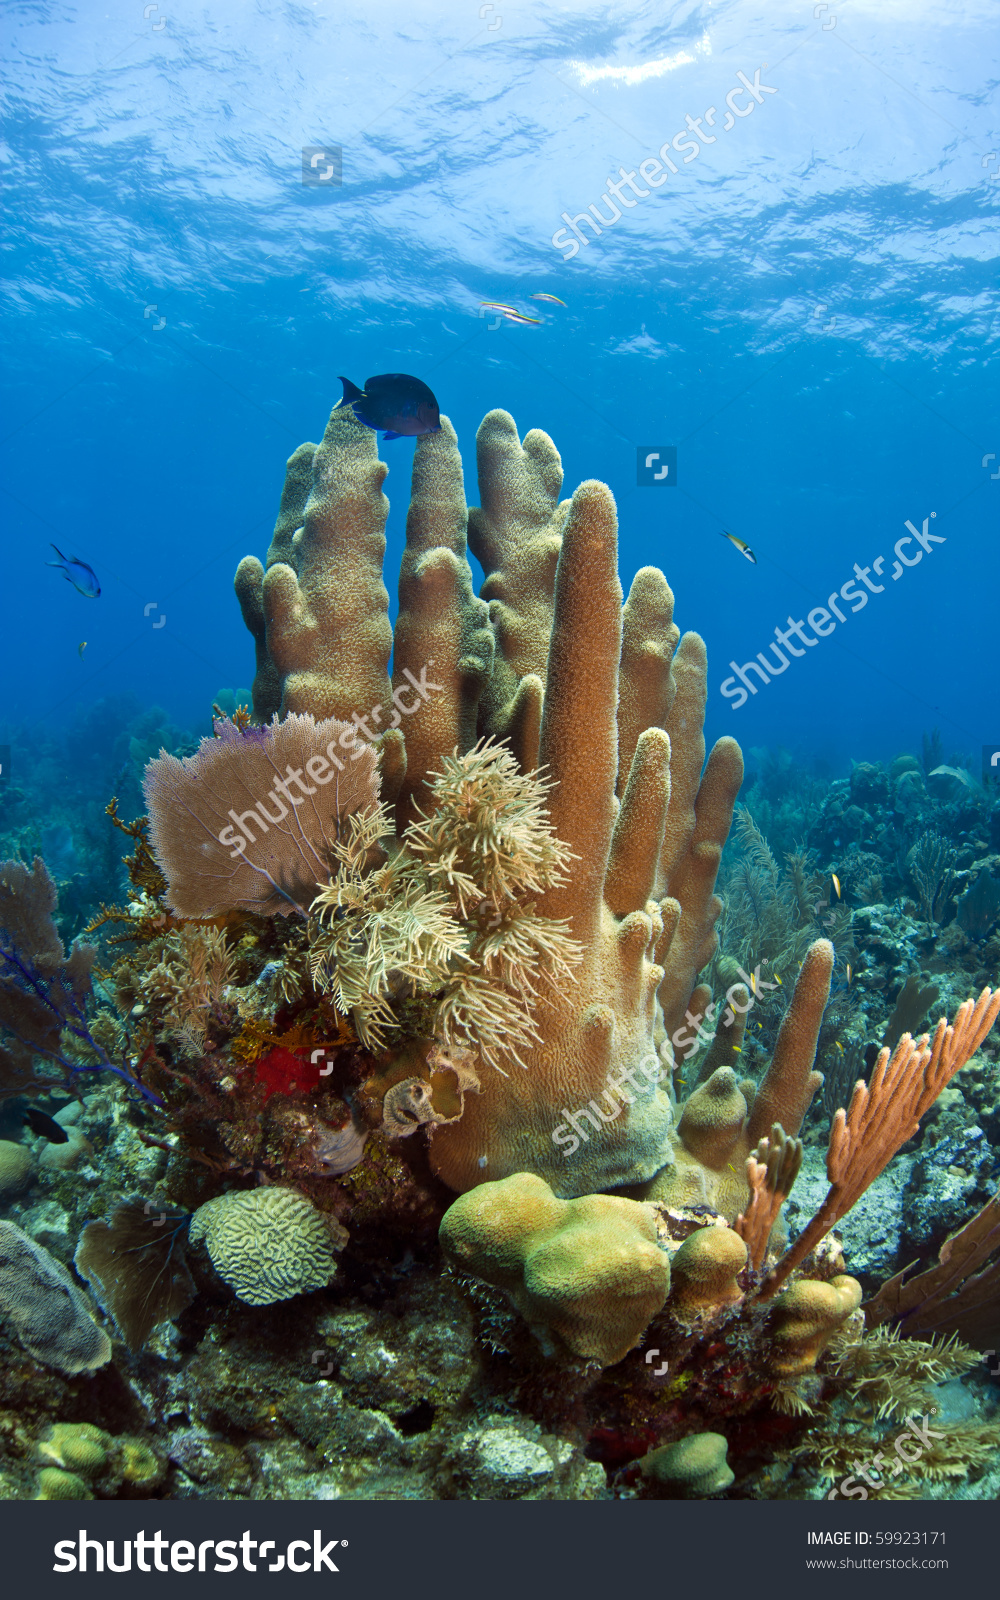 Underwater Coral Reef With Large Coral Head With Pillar Coral.